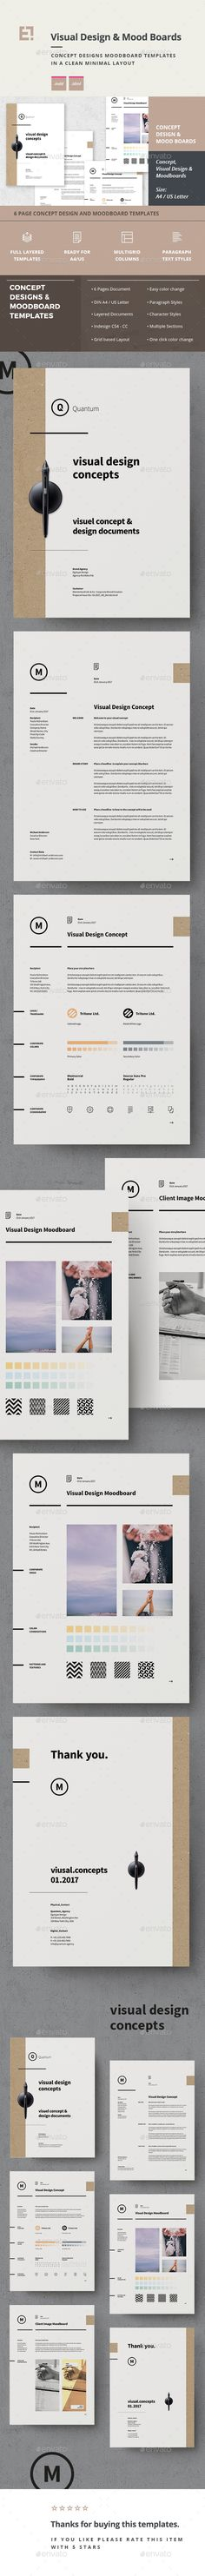 Concept Design Mood Board Templates by egotype Concept Design and Moodboard Templates in DIN A4 and US Letter size Inspire yourself or your team with these handy, printable mood